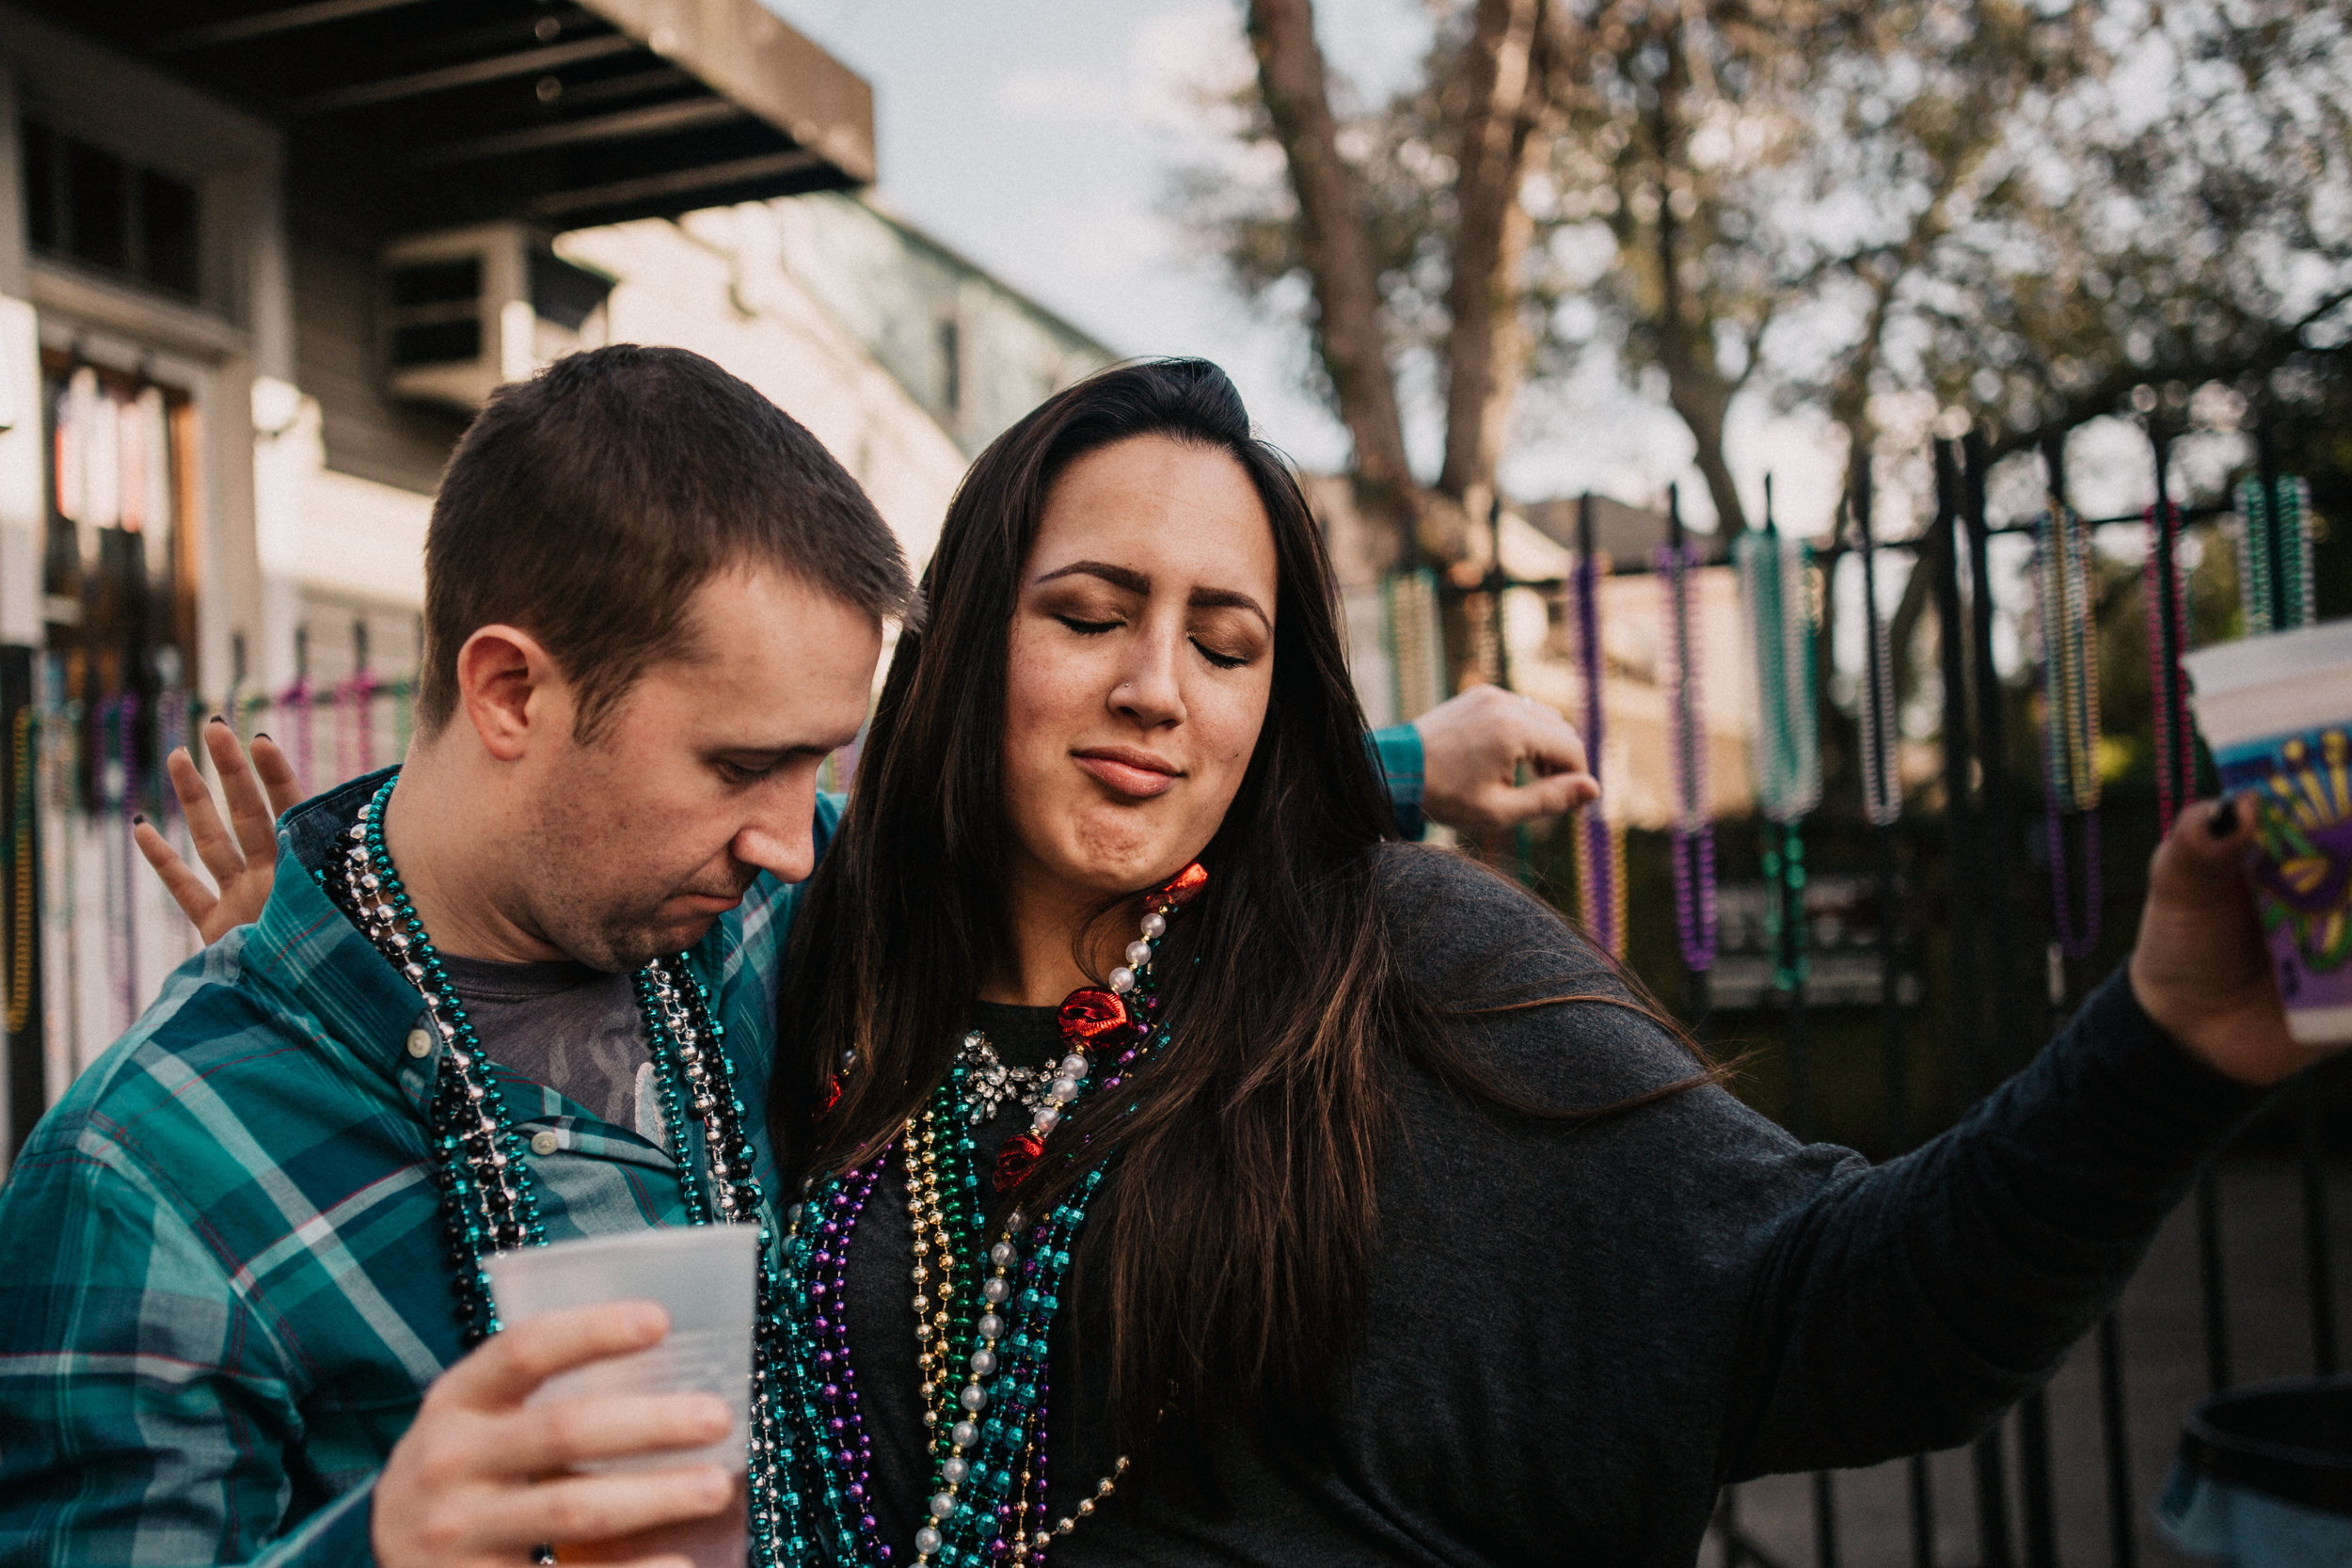 Mardi Gras engagement session in New Orleans